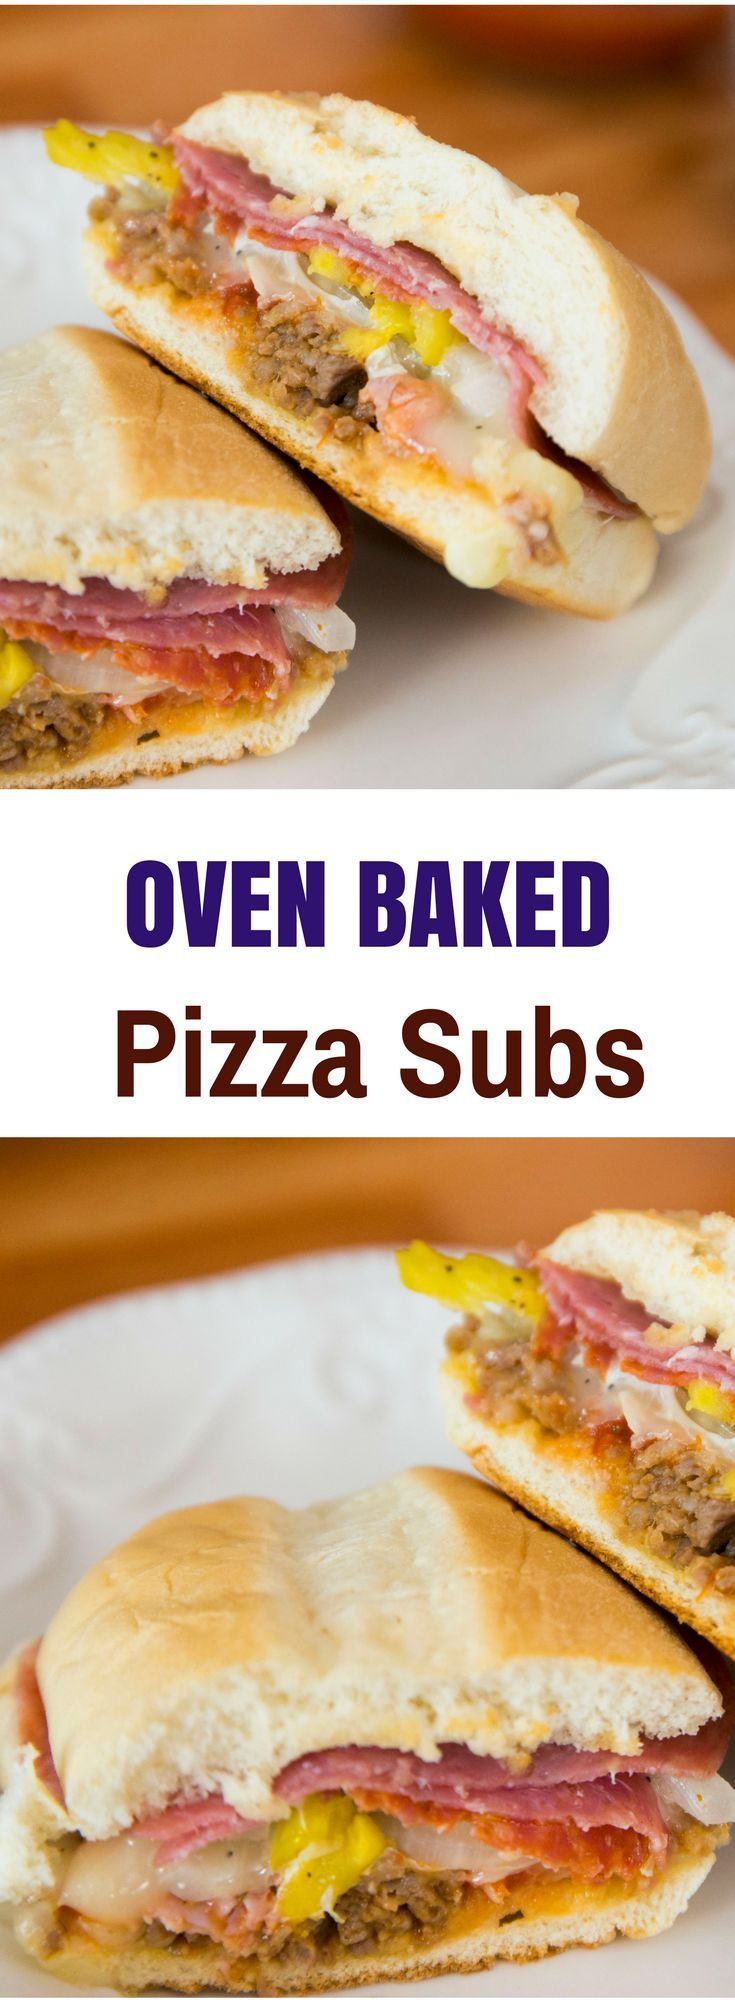 When the weekend comes, we all could use a new idea for lunch! These Pizza Sub Sandwiches are melt-in-your-mouth yummy, and so much better than take-out!